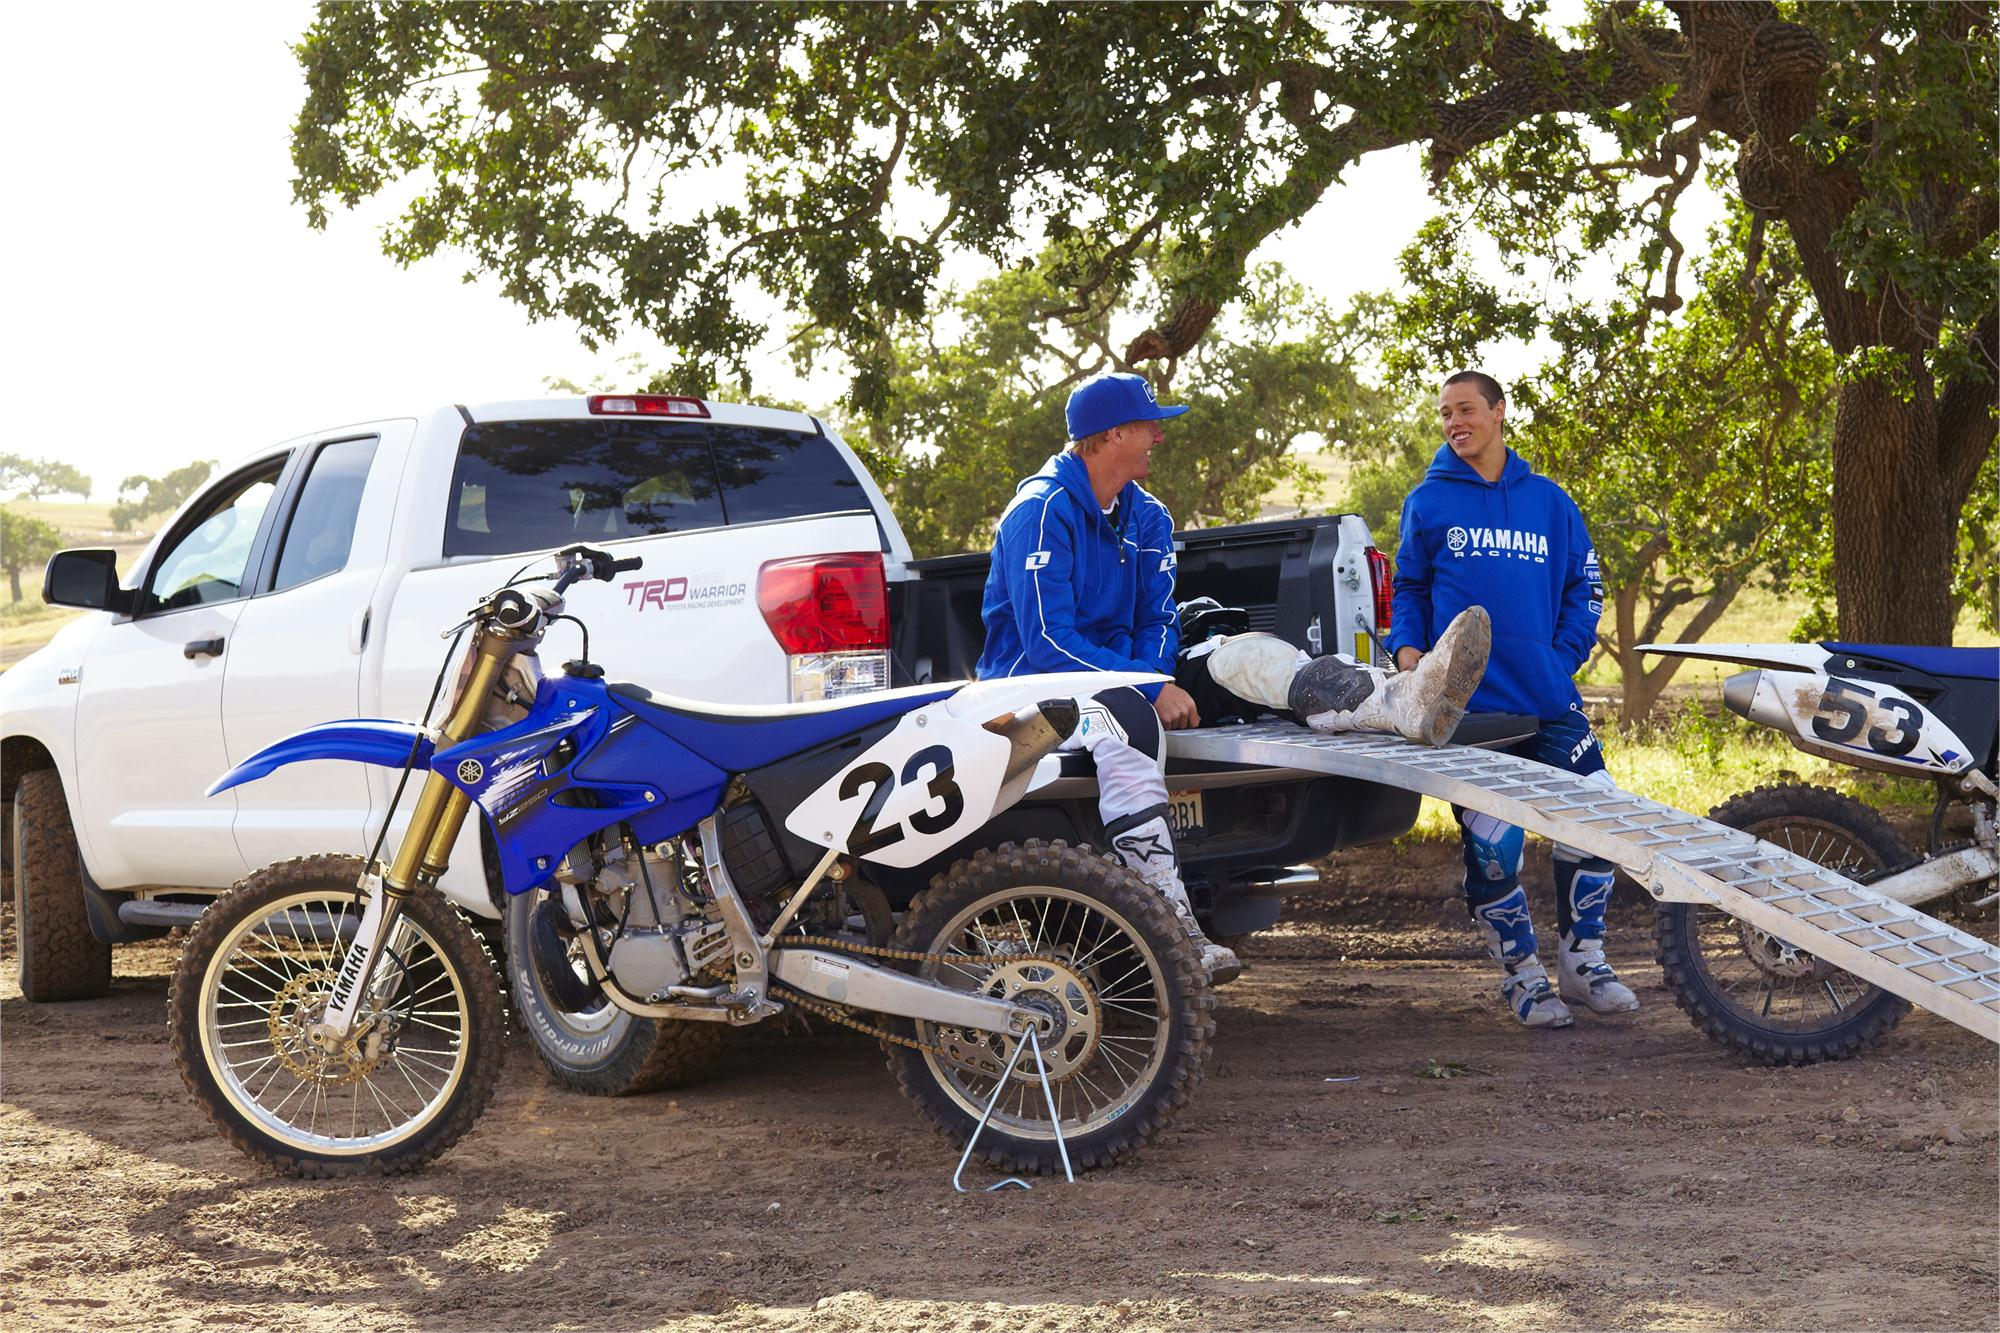 2004 Yamaha Yz250 2 500 Image 4 Pictures to pin on Pinterest